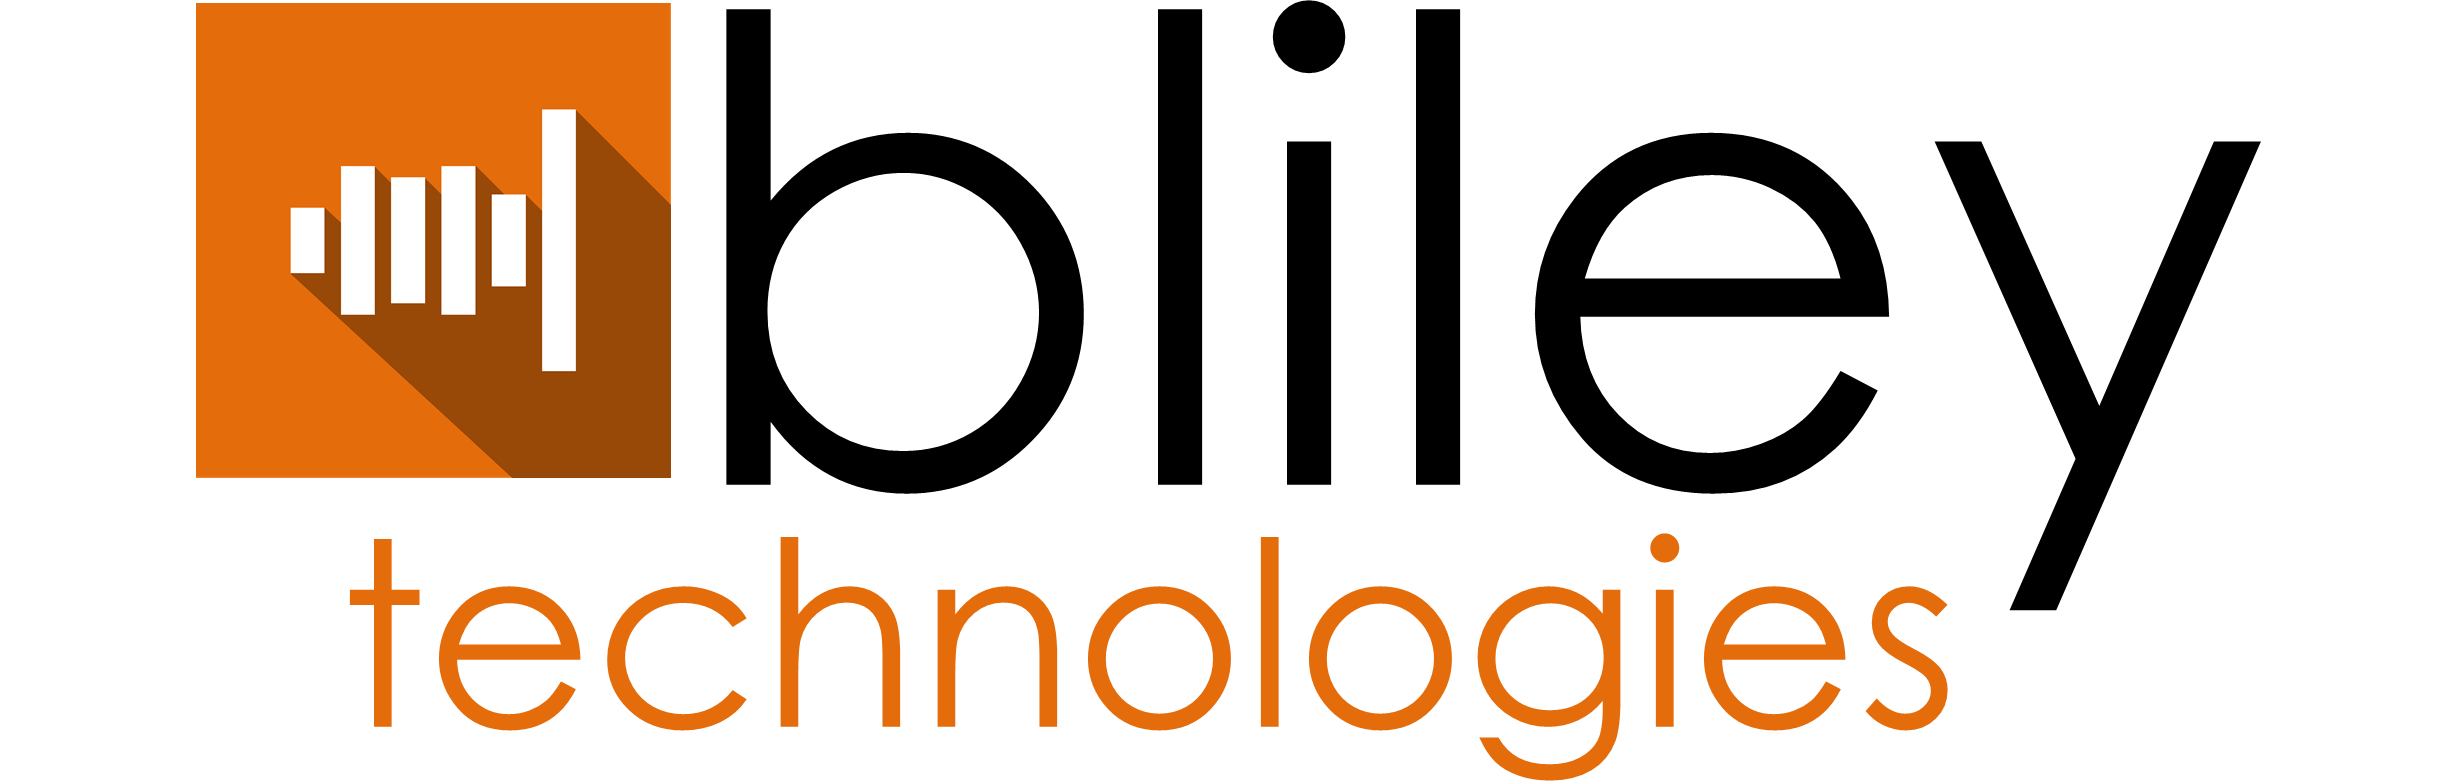 Bliley Technologies logo, Get Us PPE partner